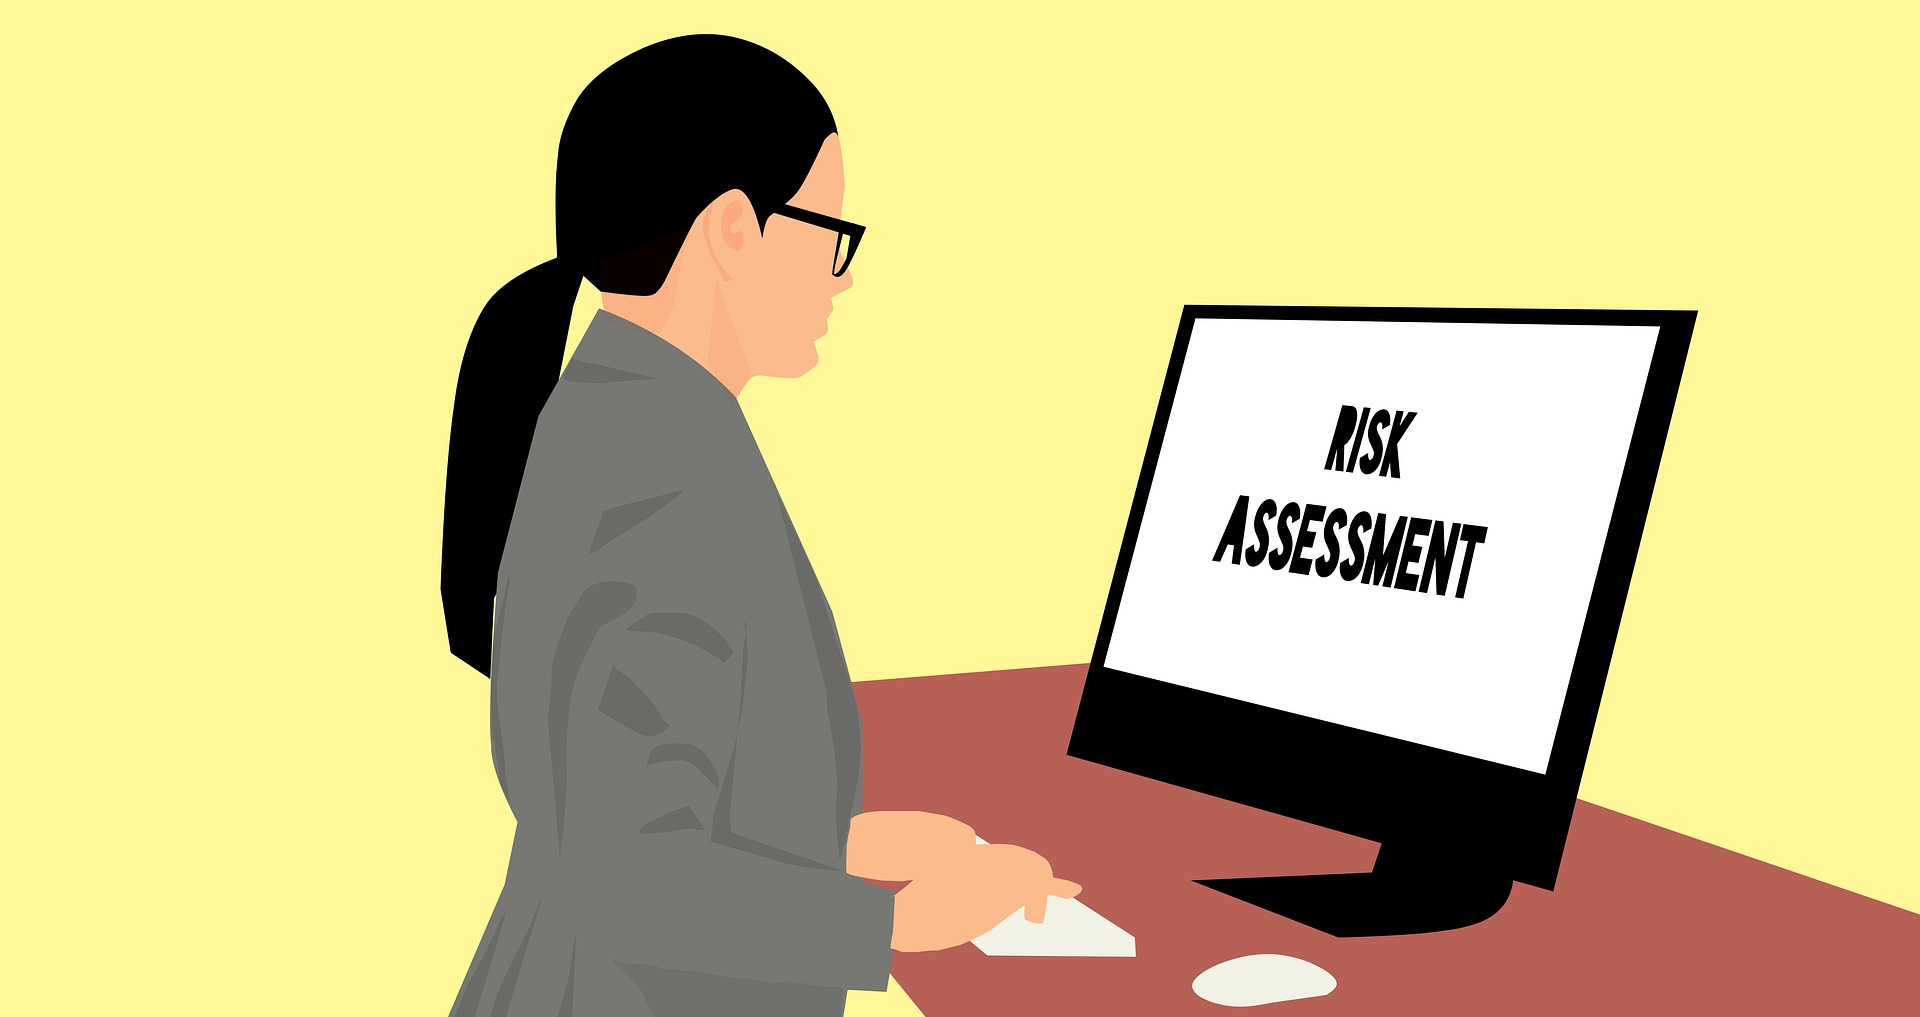 graphic of person looking at vdu screen with words risk assessment on it